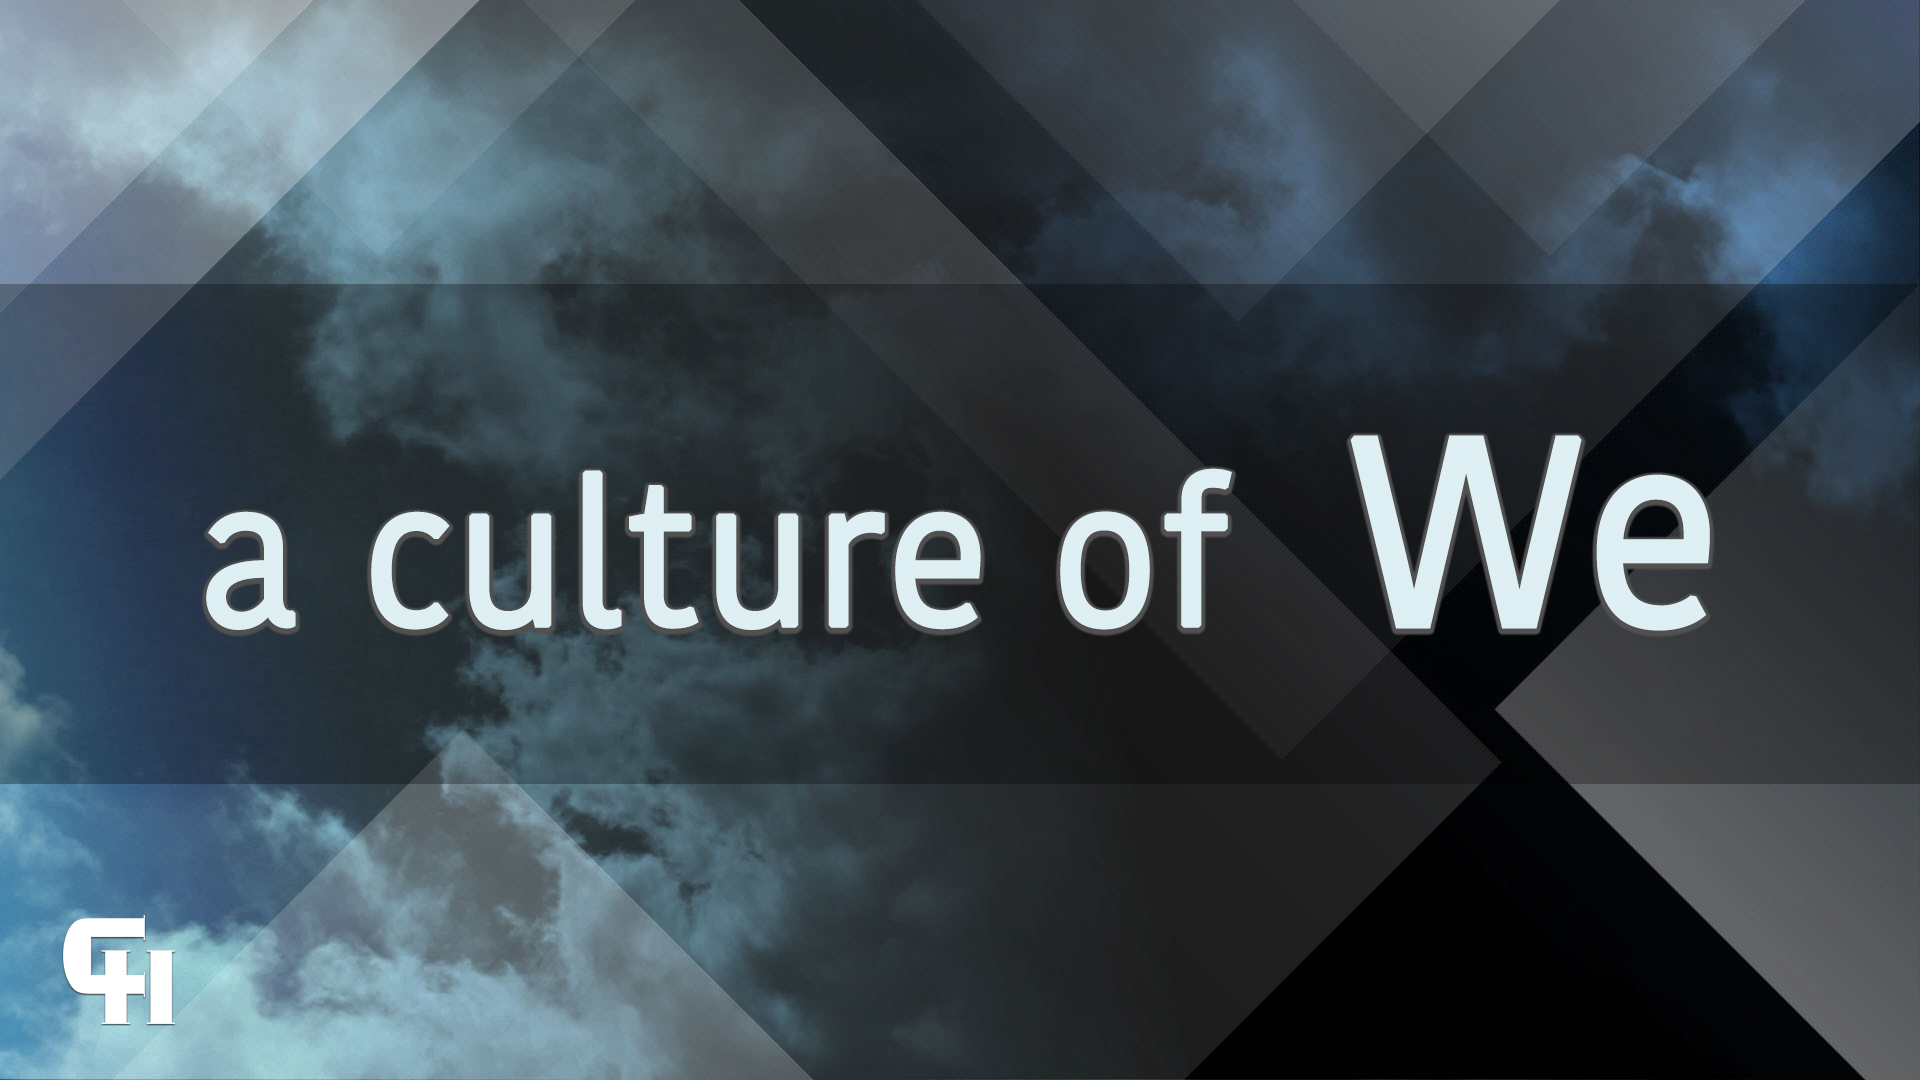 a culture of We LOGO.jpg